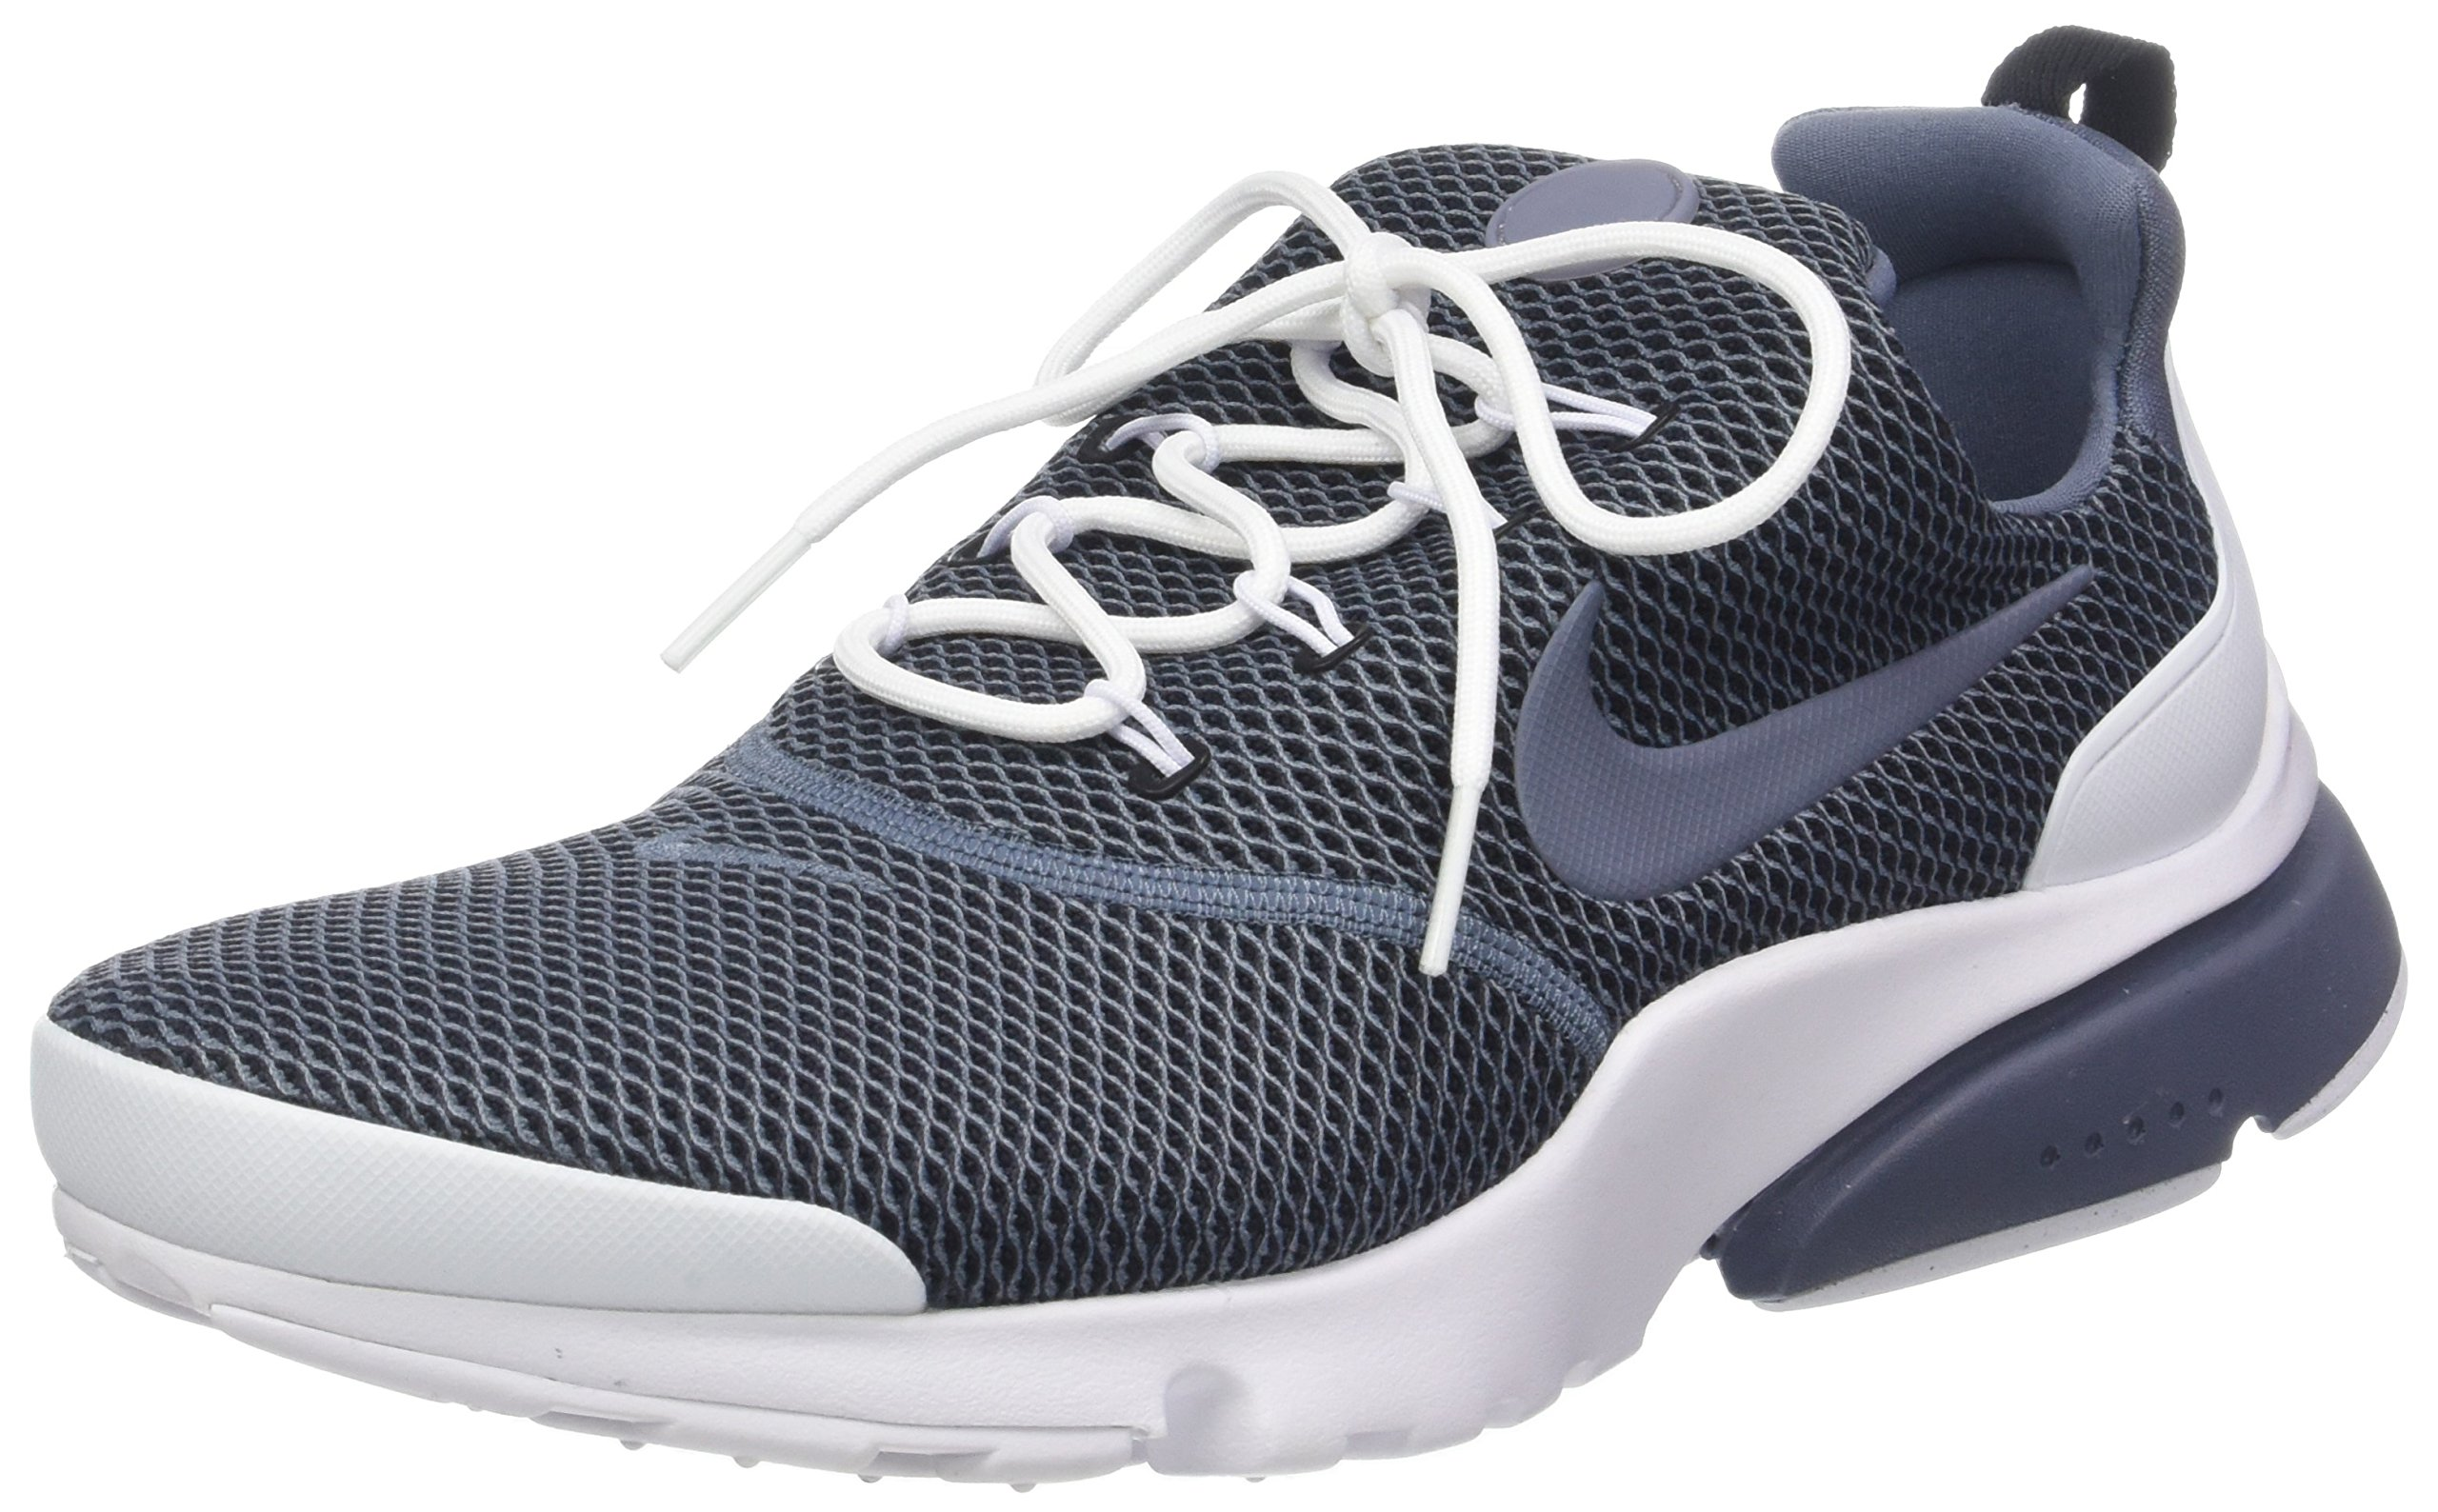 Nike Mens Presto Fly Se Fabric Low Top Lace Up Running Sneaker, Blue, Size 8.0